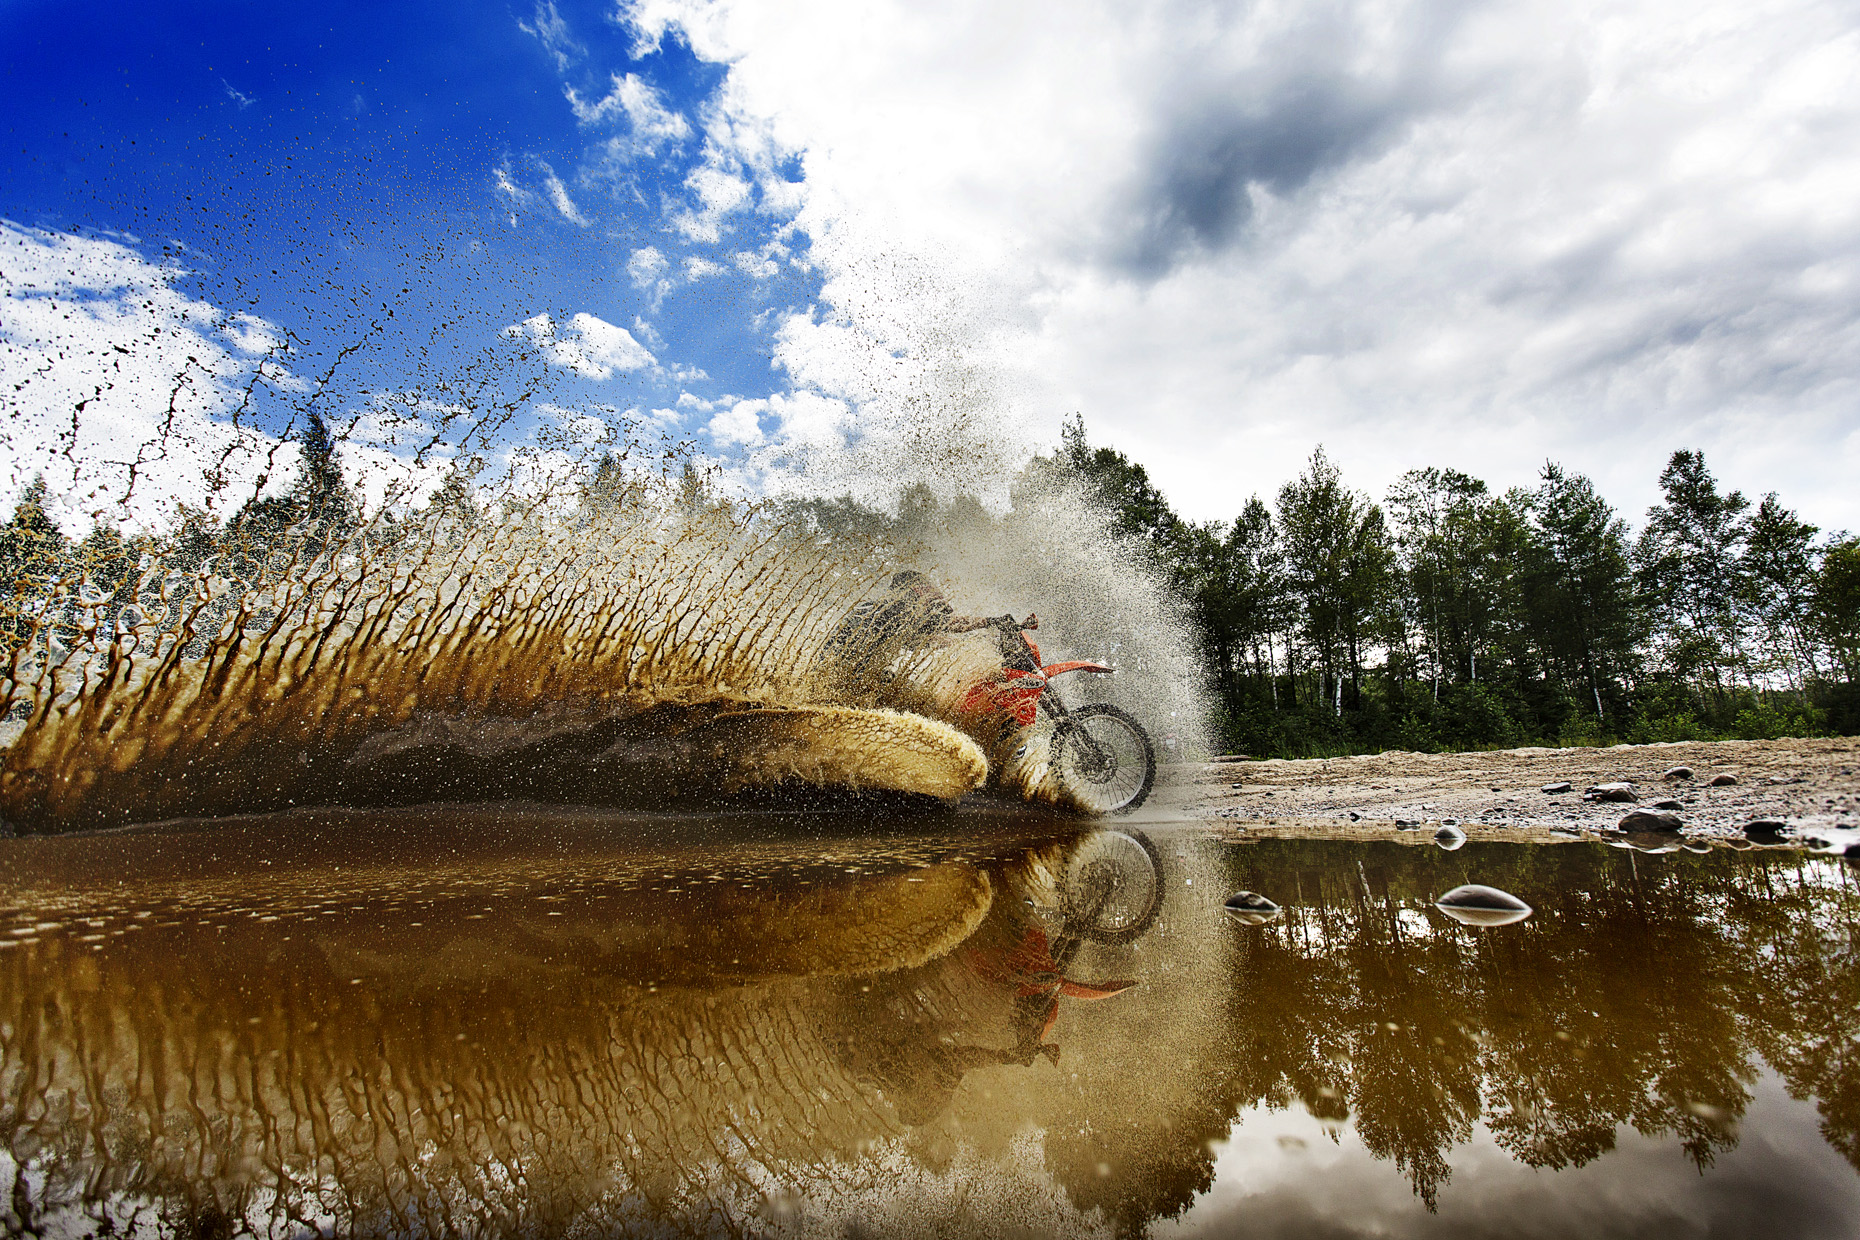 Dirt Bikes and enduro by Boston based commercial sports photographer Brian Nevins